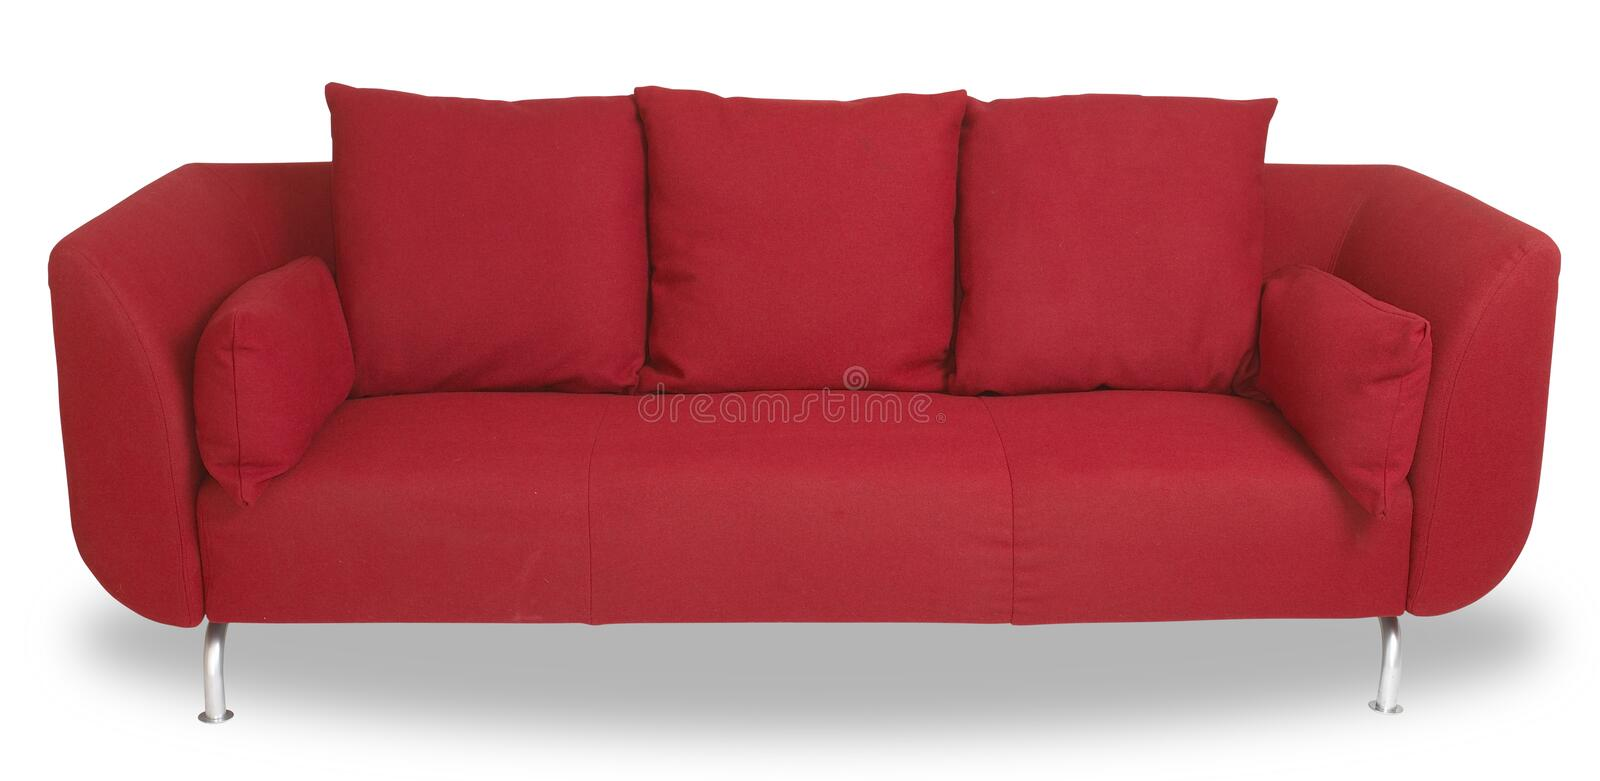 Comfy red couch sofa isolated with path. A comfy red couch sofa isolated on white with clipping path stock images